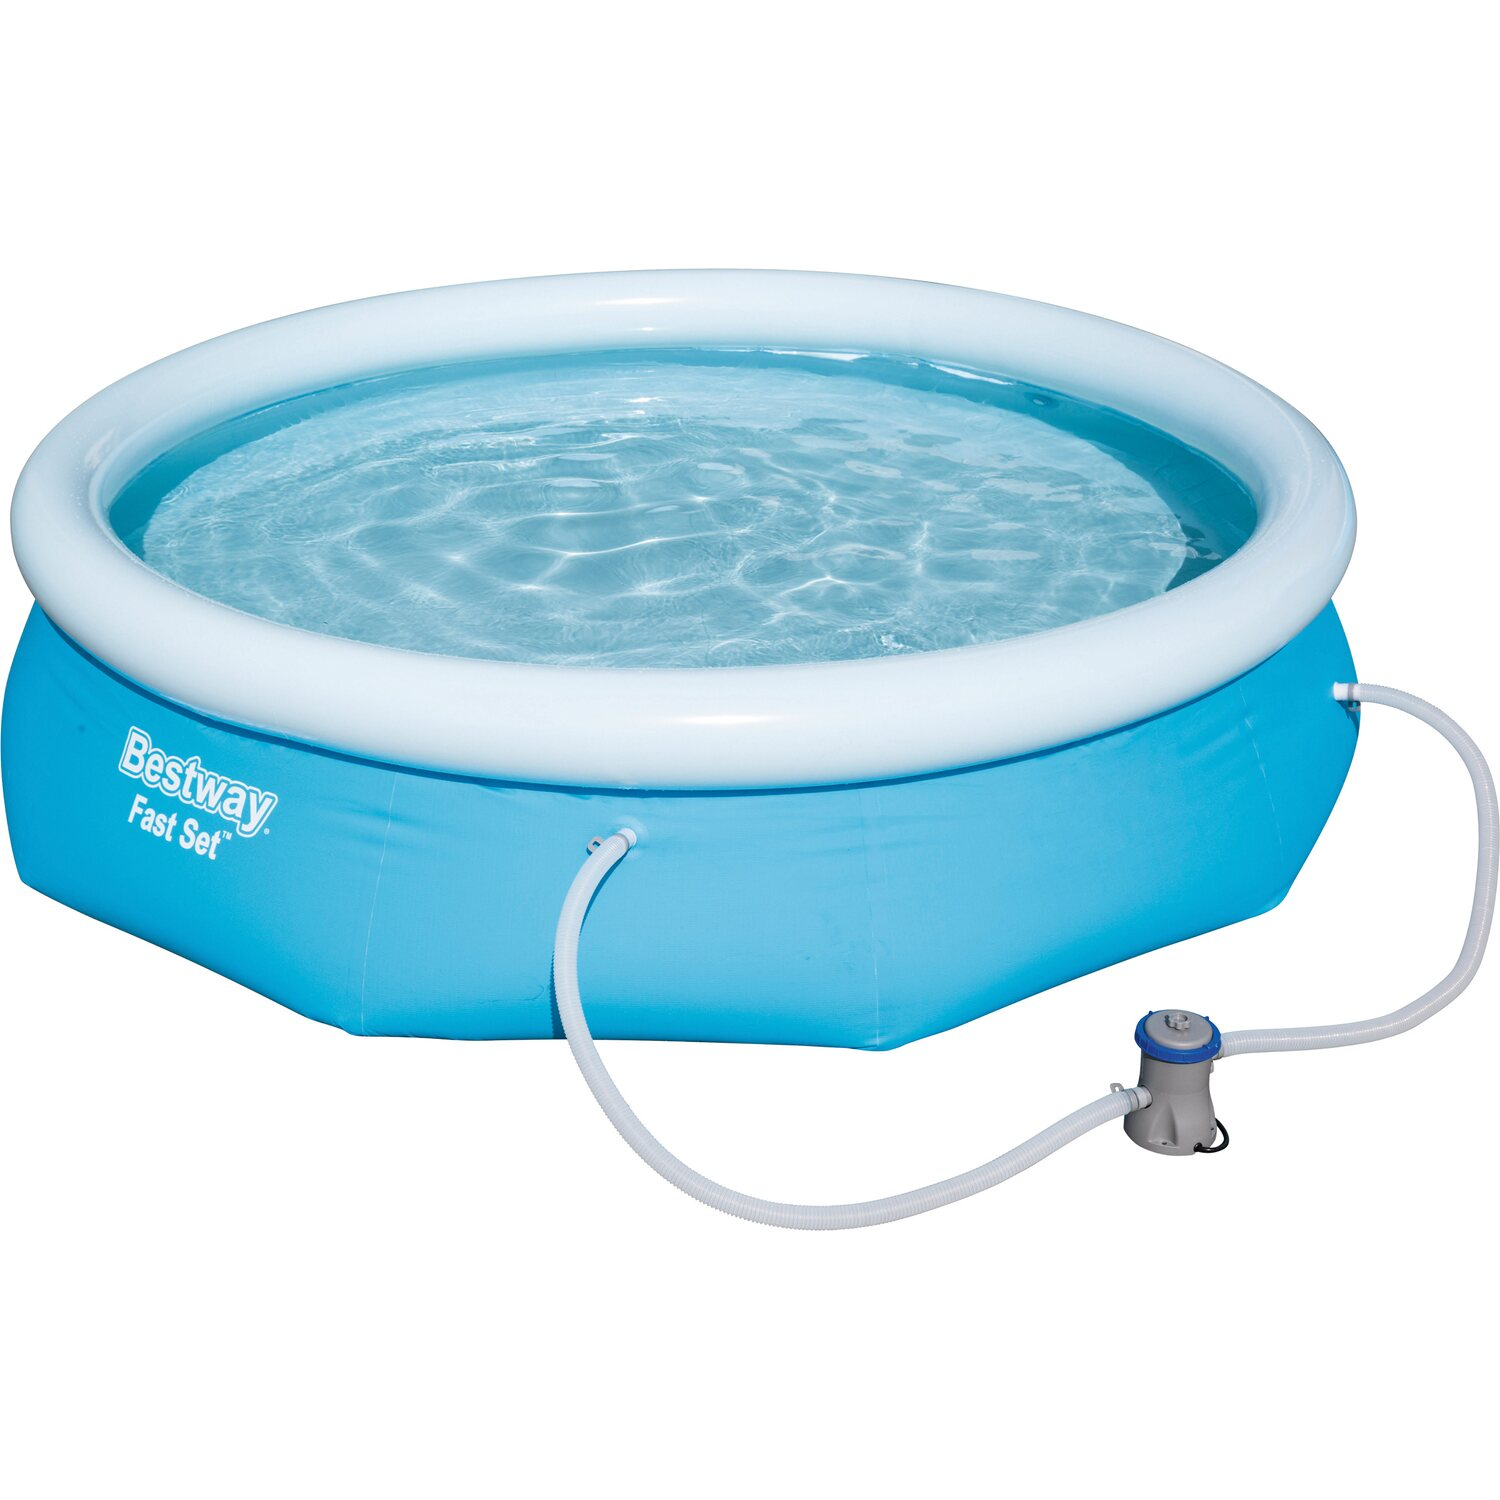 Bestway fast set pool 305 cm x 76 cm nakoupit u obi for Bestway pool obi